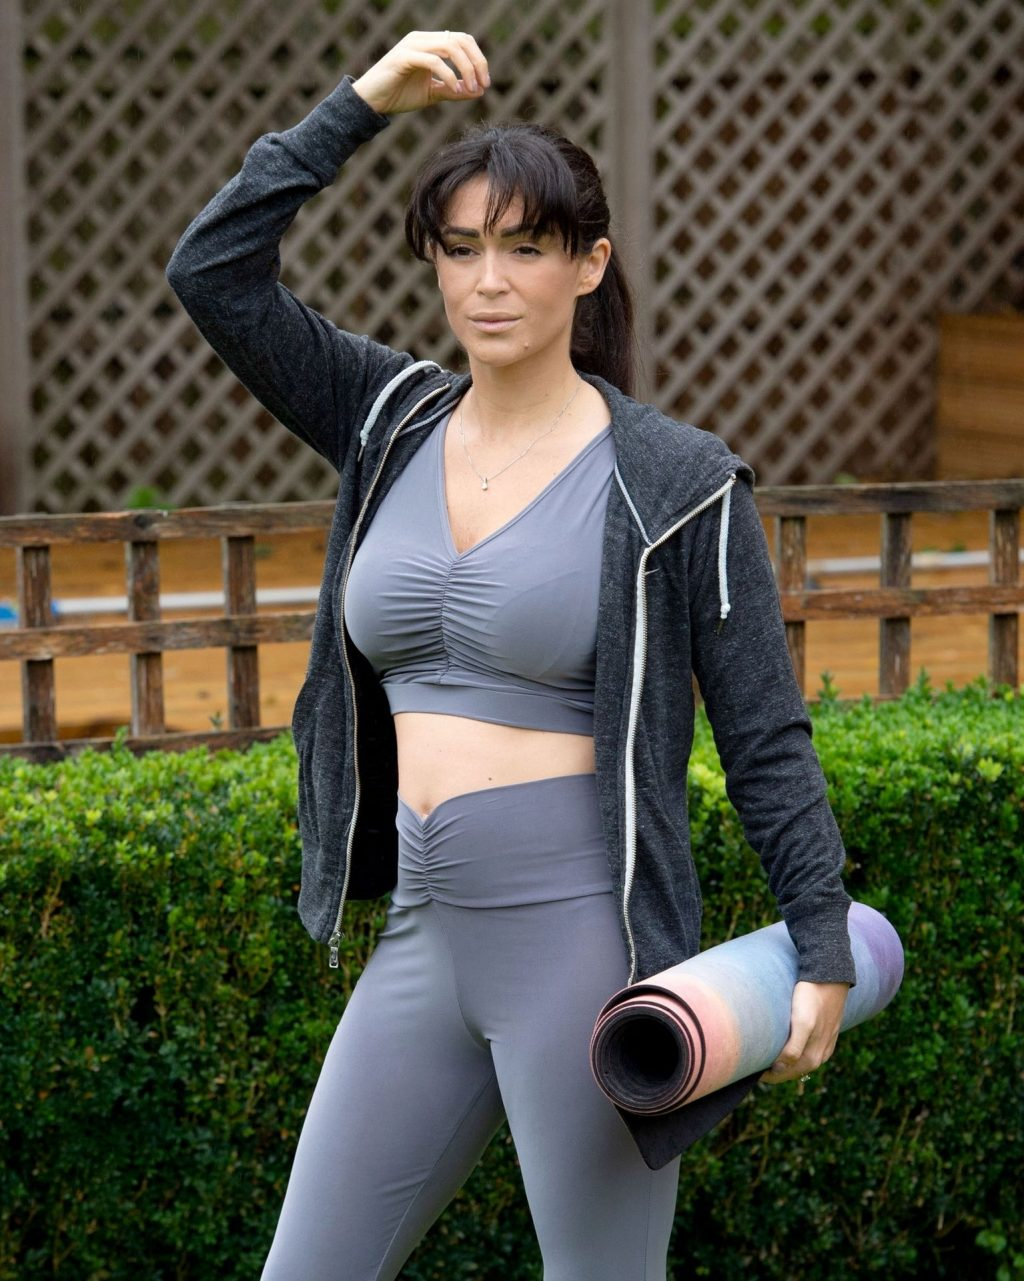 Casey Batchelor Shows Off Her Impressive Yoga Moves in London (10 Photos)